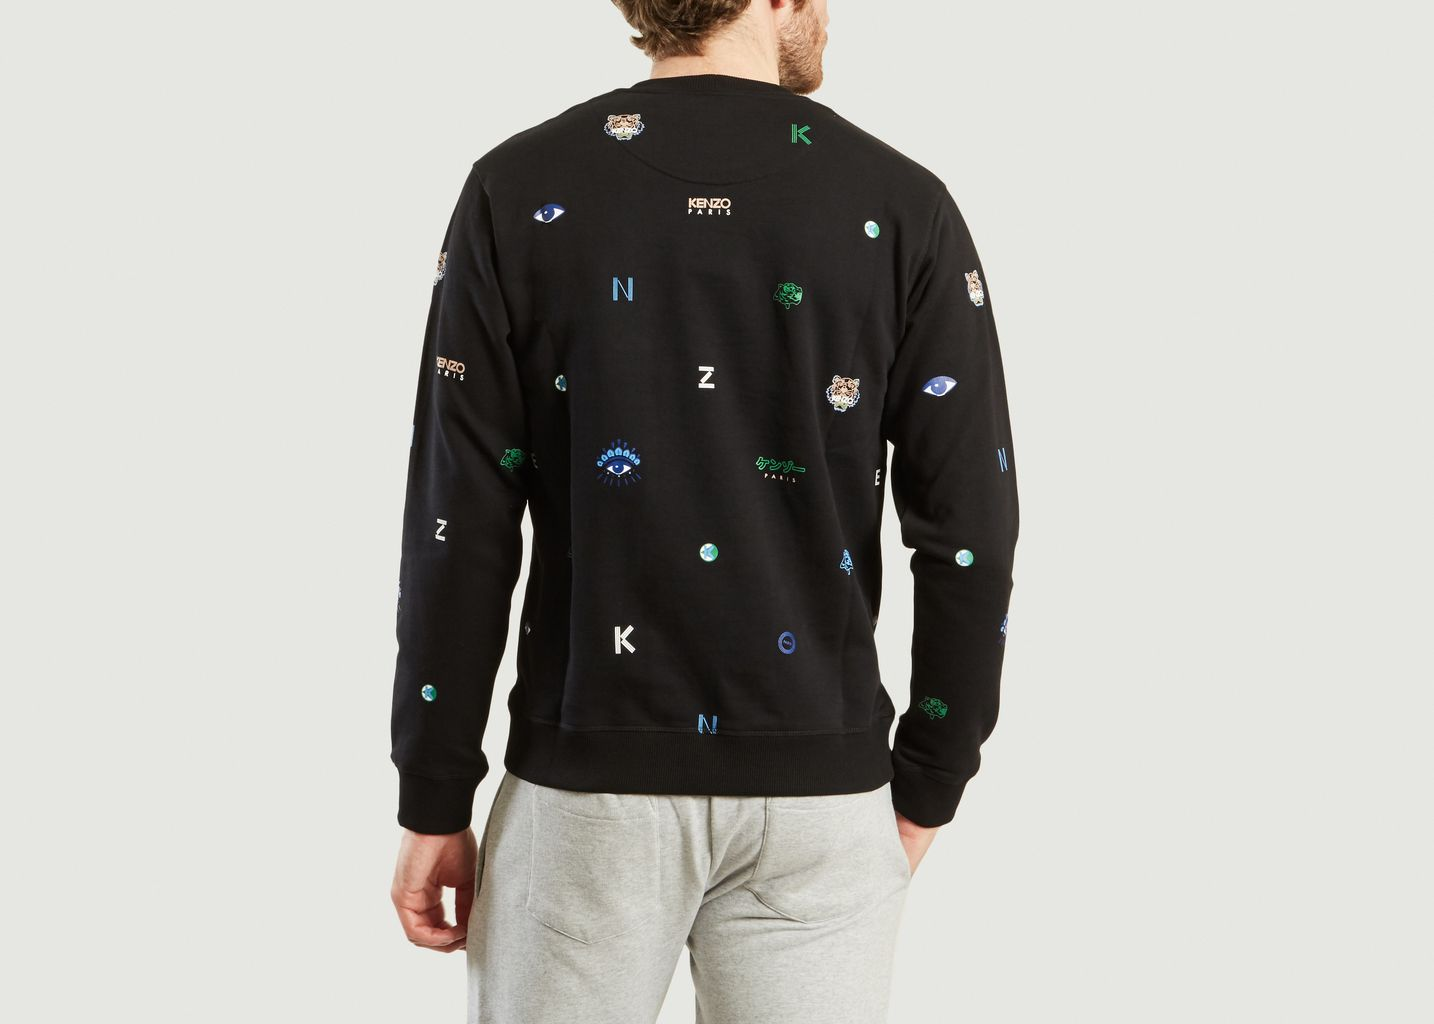 e0ef7048e6bc Sweat Multi Icons Noir Kenzo   L Exception